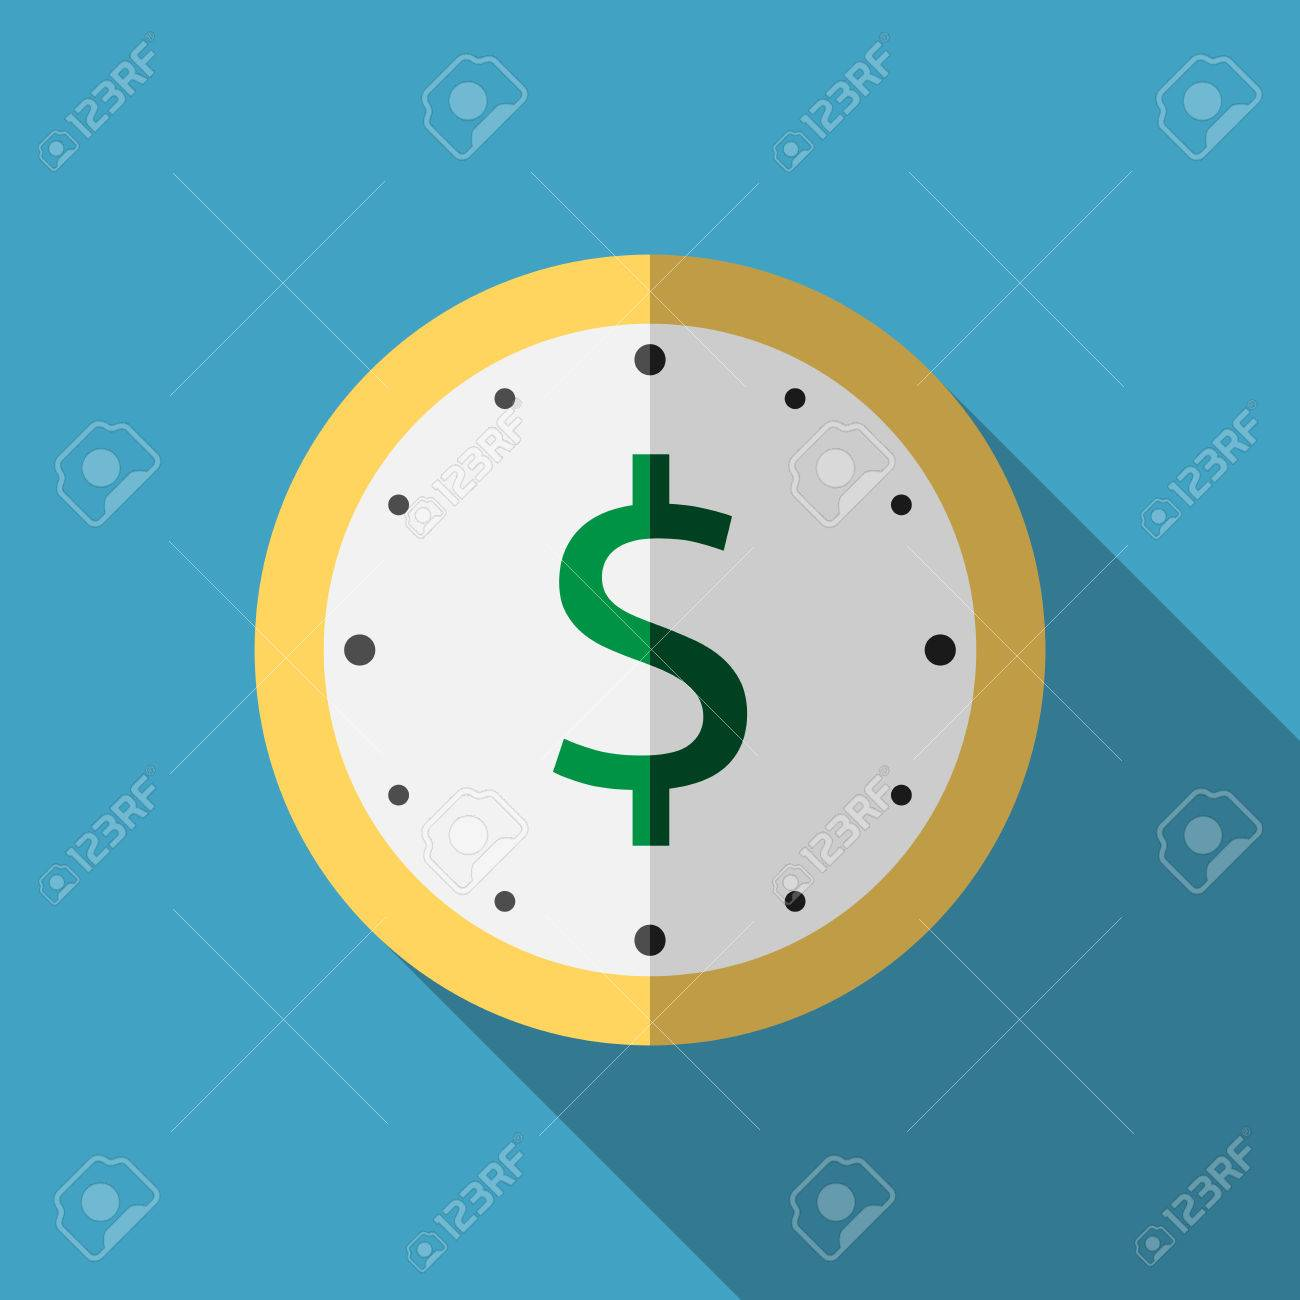 Golden clock with green dollar sign on its dial  Flat style icon